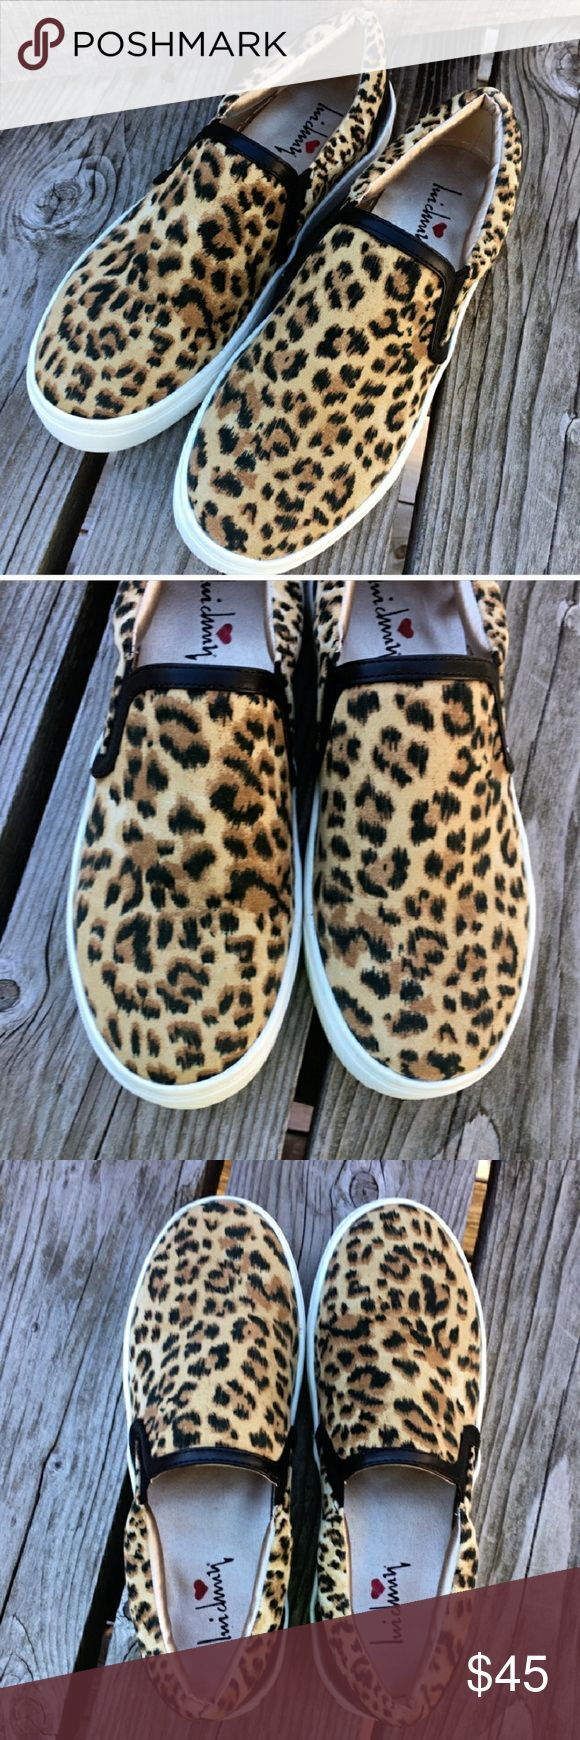 Leopard print slip on sneakers Brand new leopard print slip on sneakers. I purchased these and turned out they were too small. Shoes Sneakers